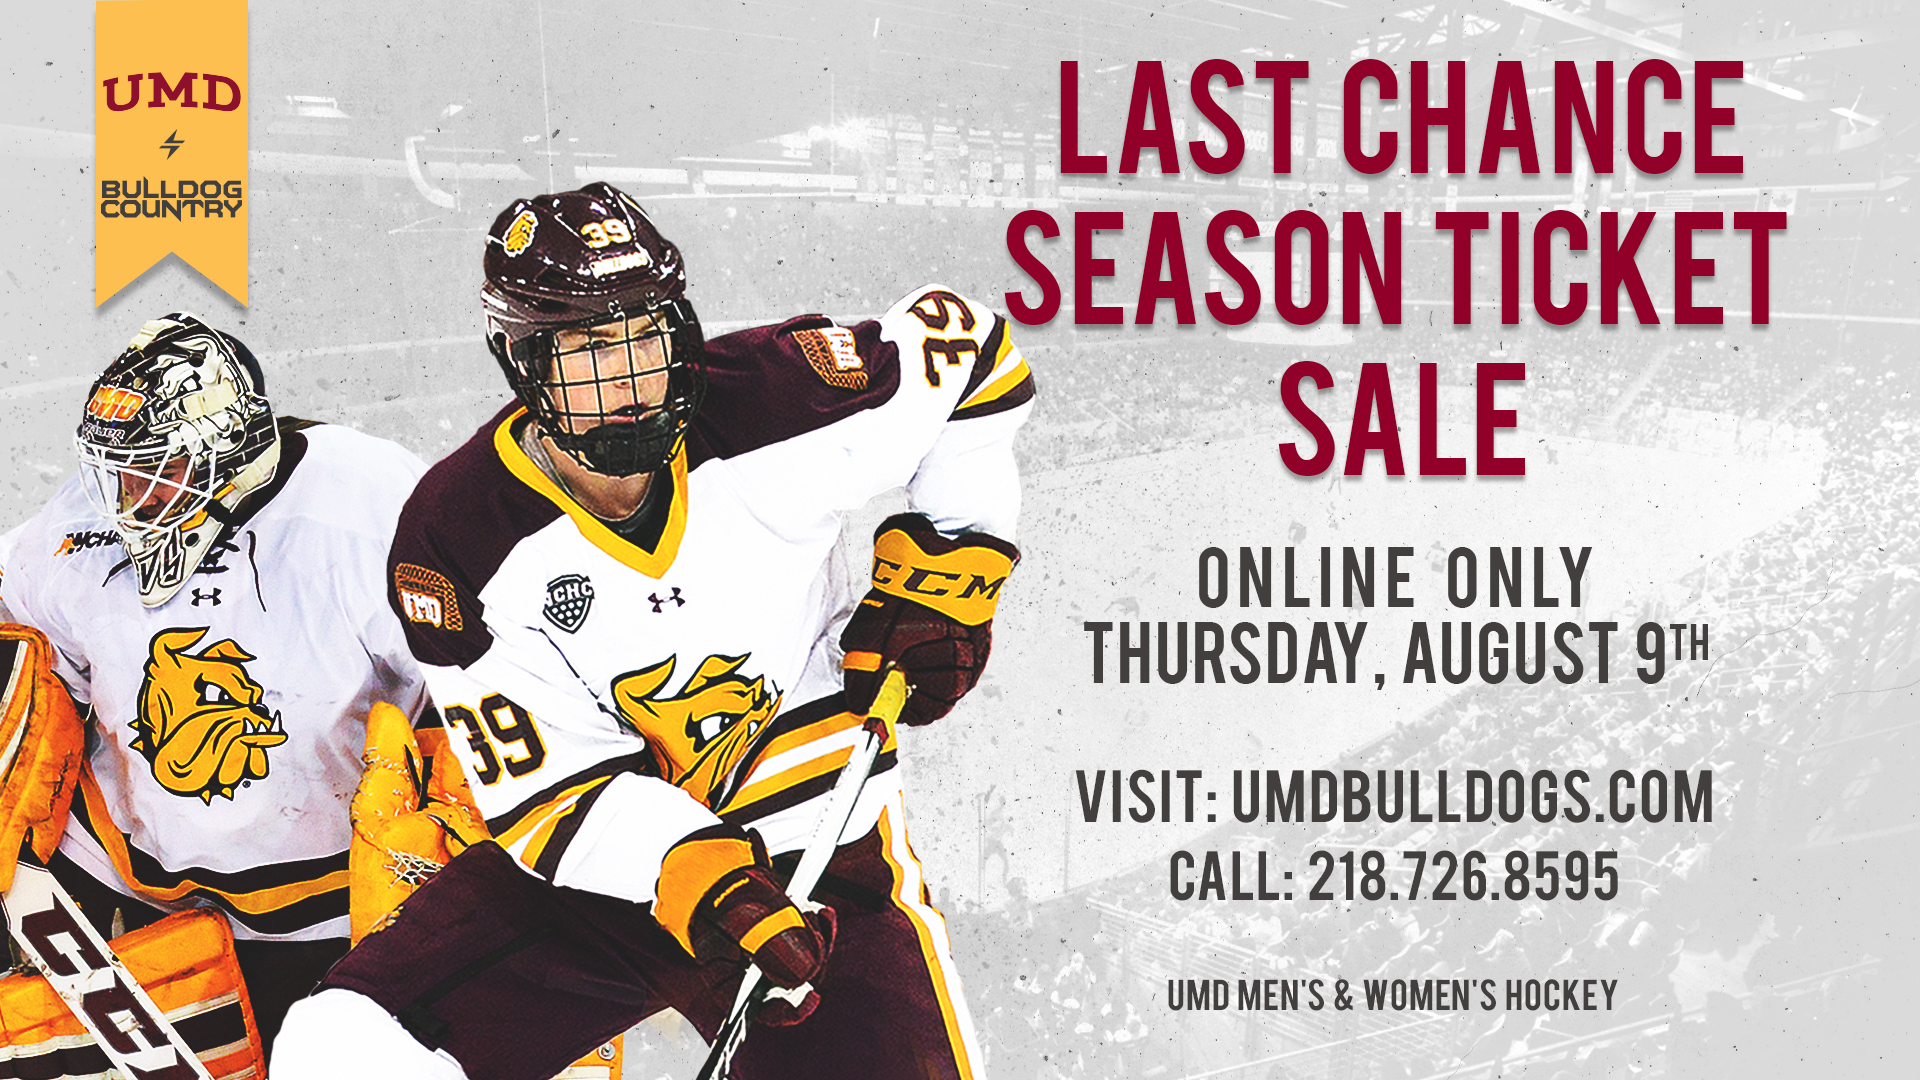 umd hockey last chance season ticket sale is online this thursday